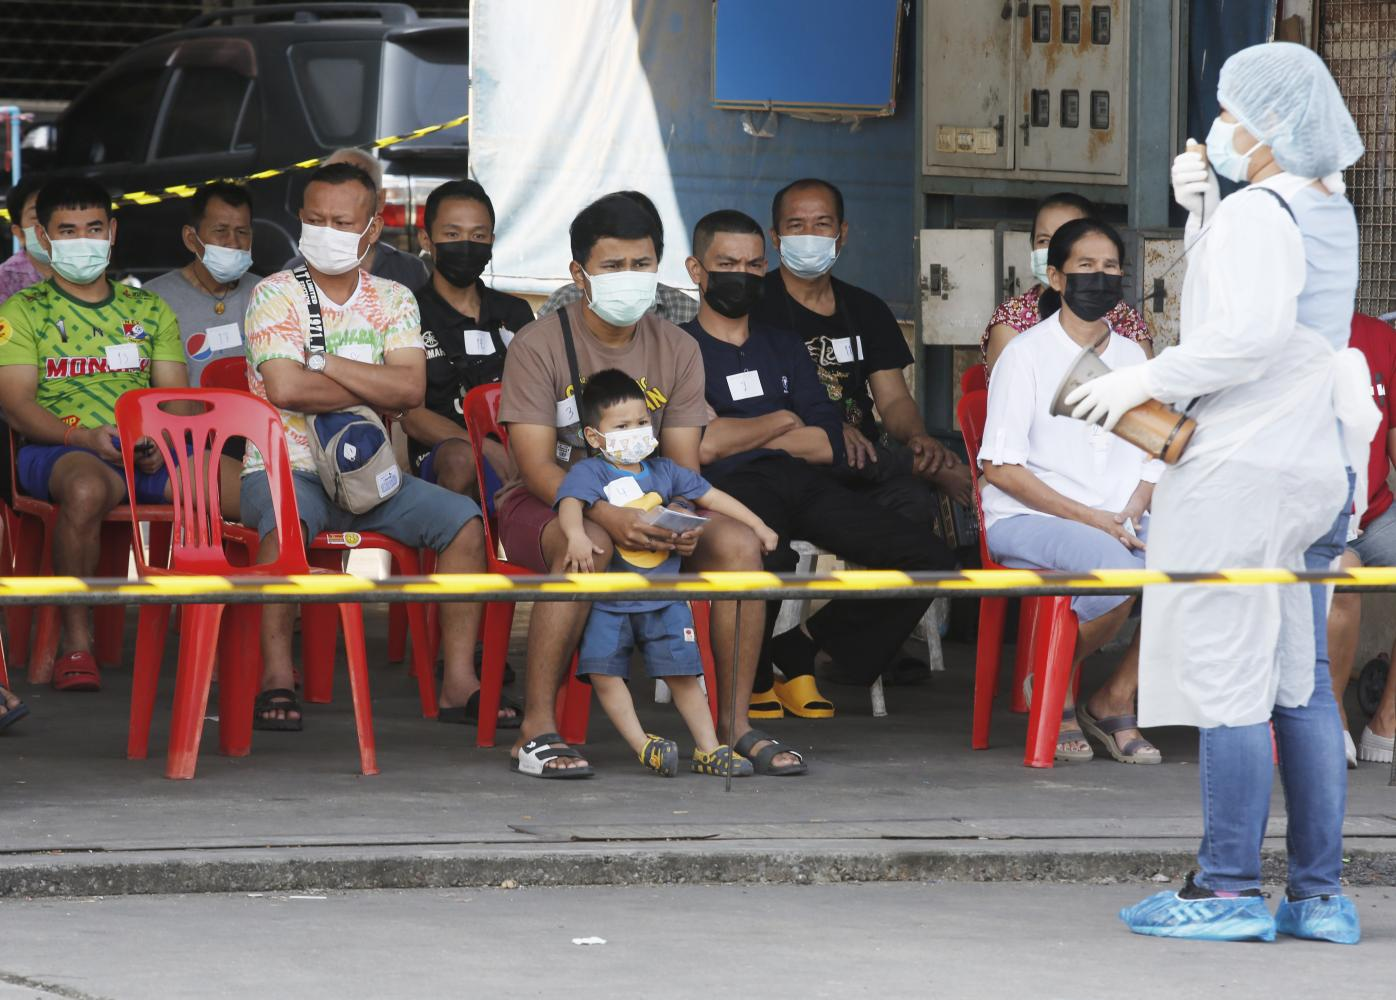 attention, please: A health official explains procedures for Covid-19 testing at Pornpat market on Rangsit-Pathum Thani Road in Pathum Thani yesterday. Shops were closed for cleaning and people connected to the market were tested after infections were detected there.